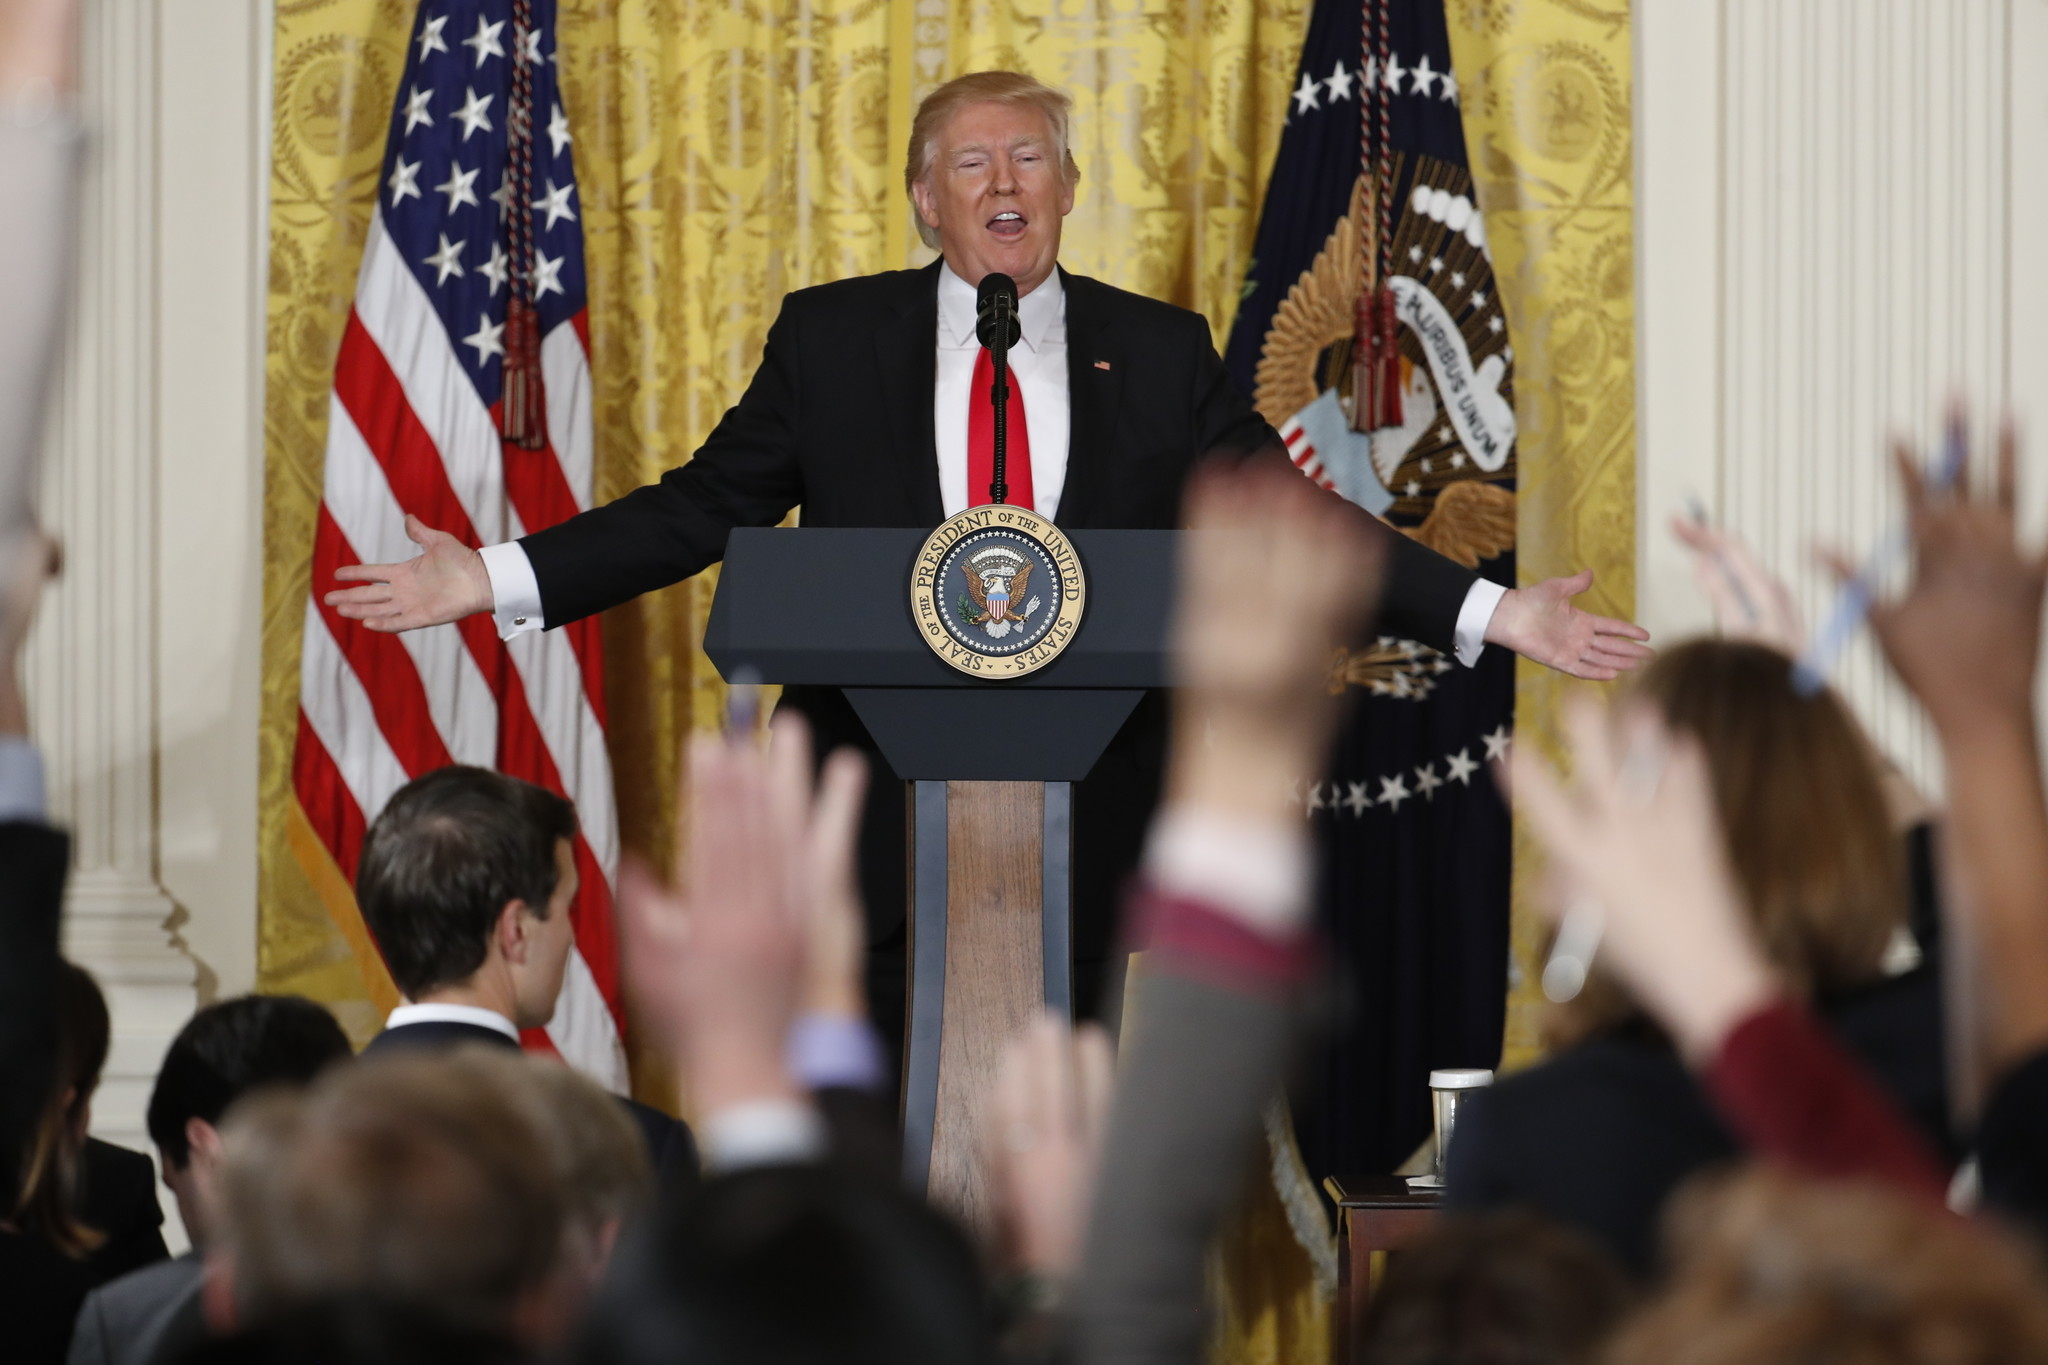 President Trump boasts about his election victory and attacks journalists at a news conference in February.